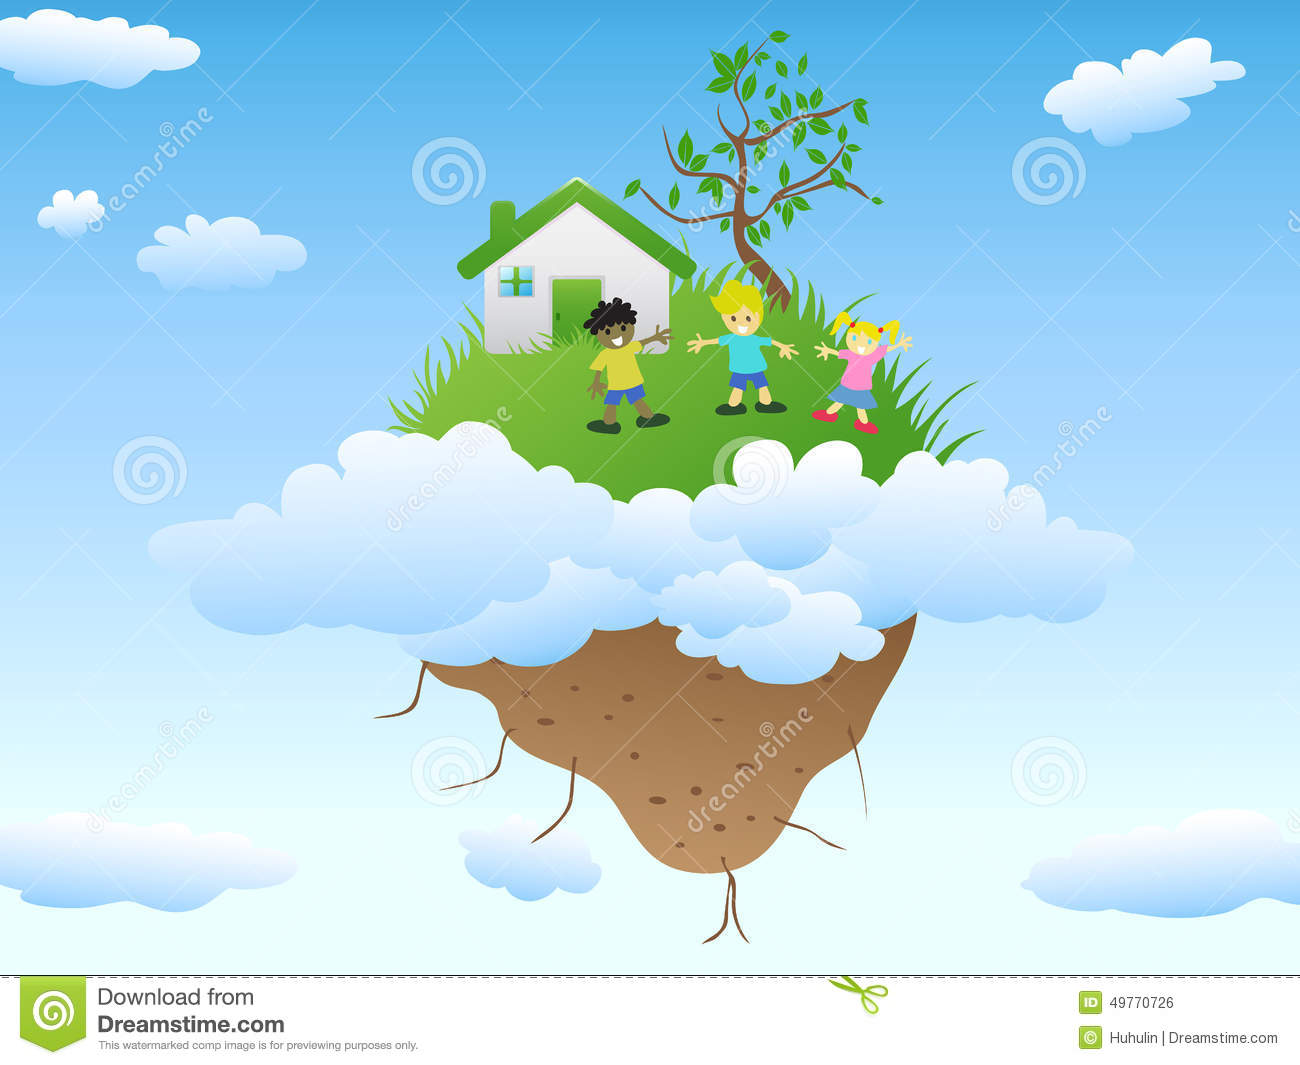 Boy And Girl Cartoon Wallpaper House On Floating Island Stock Vector Image Of Happy